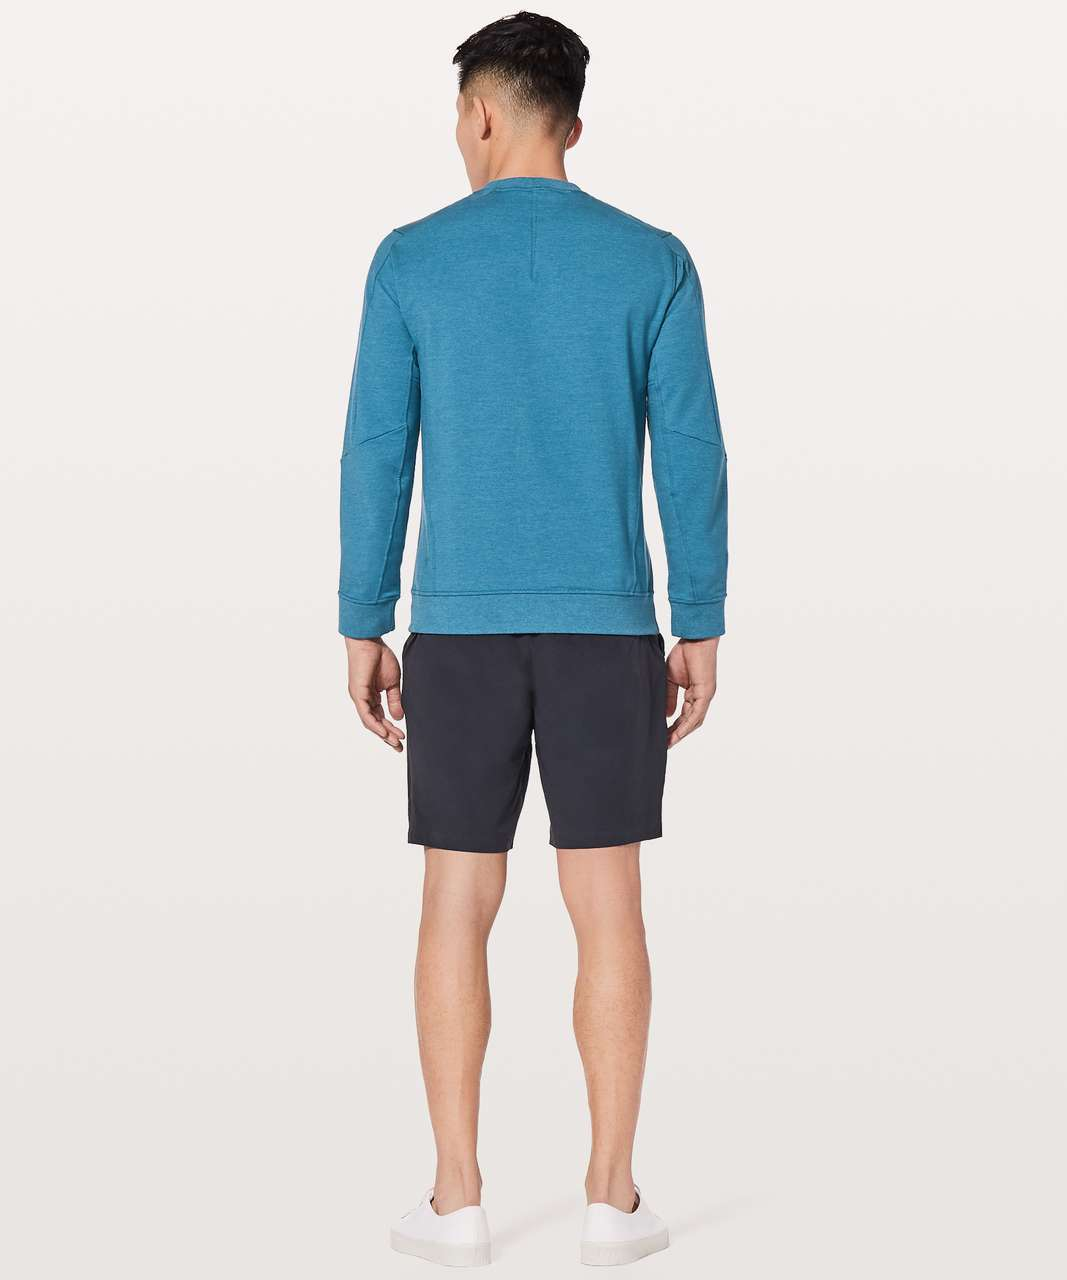 Lululemon City Sweat Crew - Heathered Pewter Blue